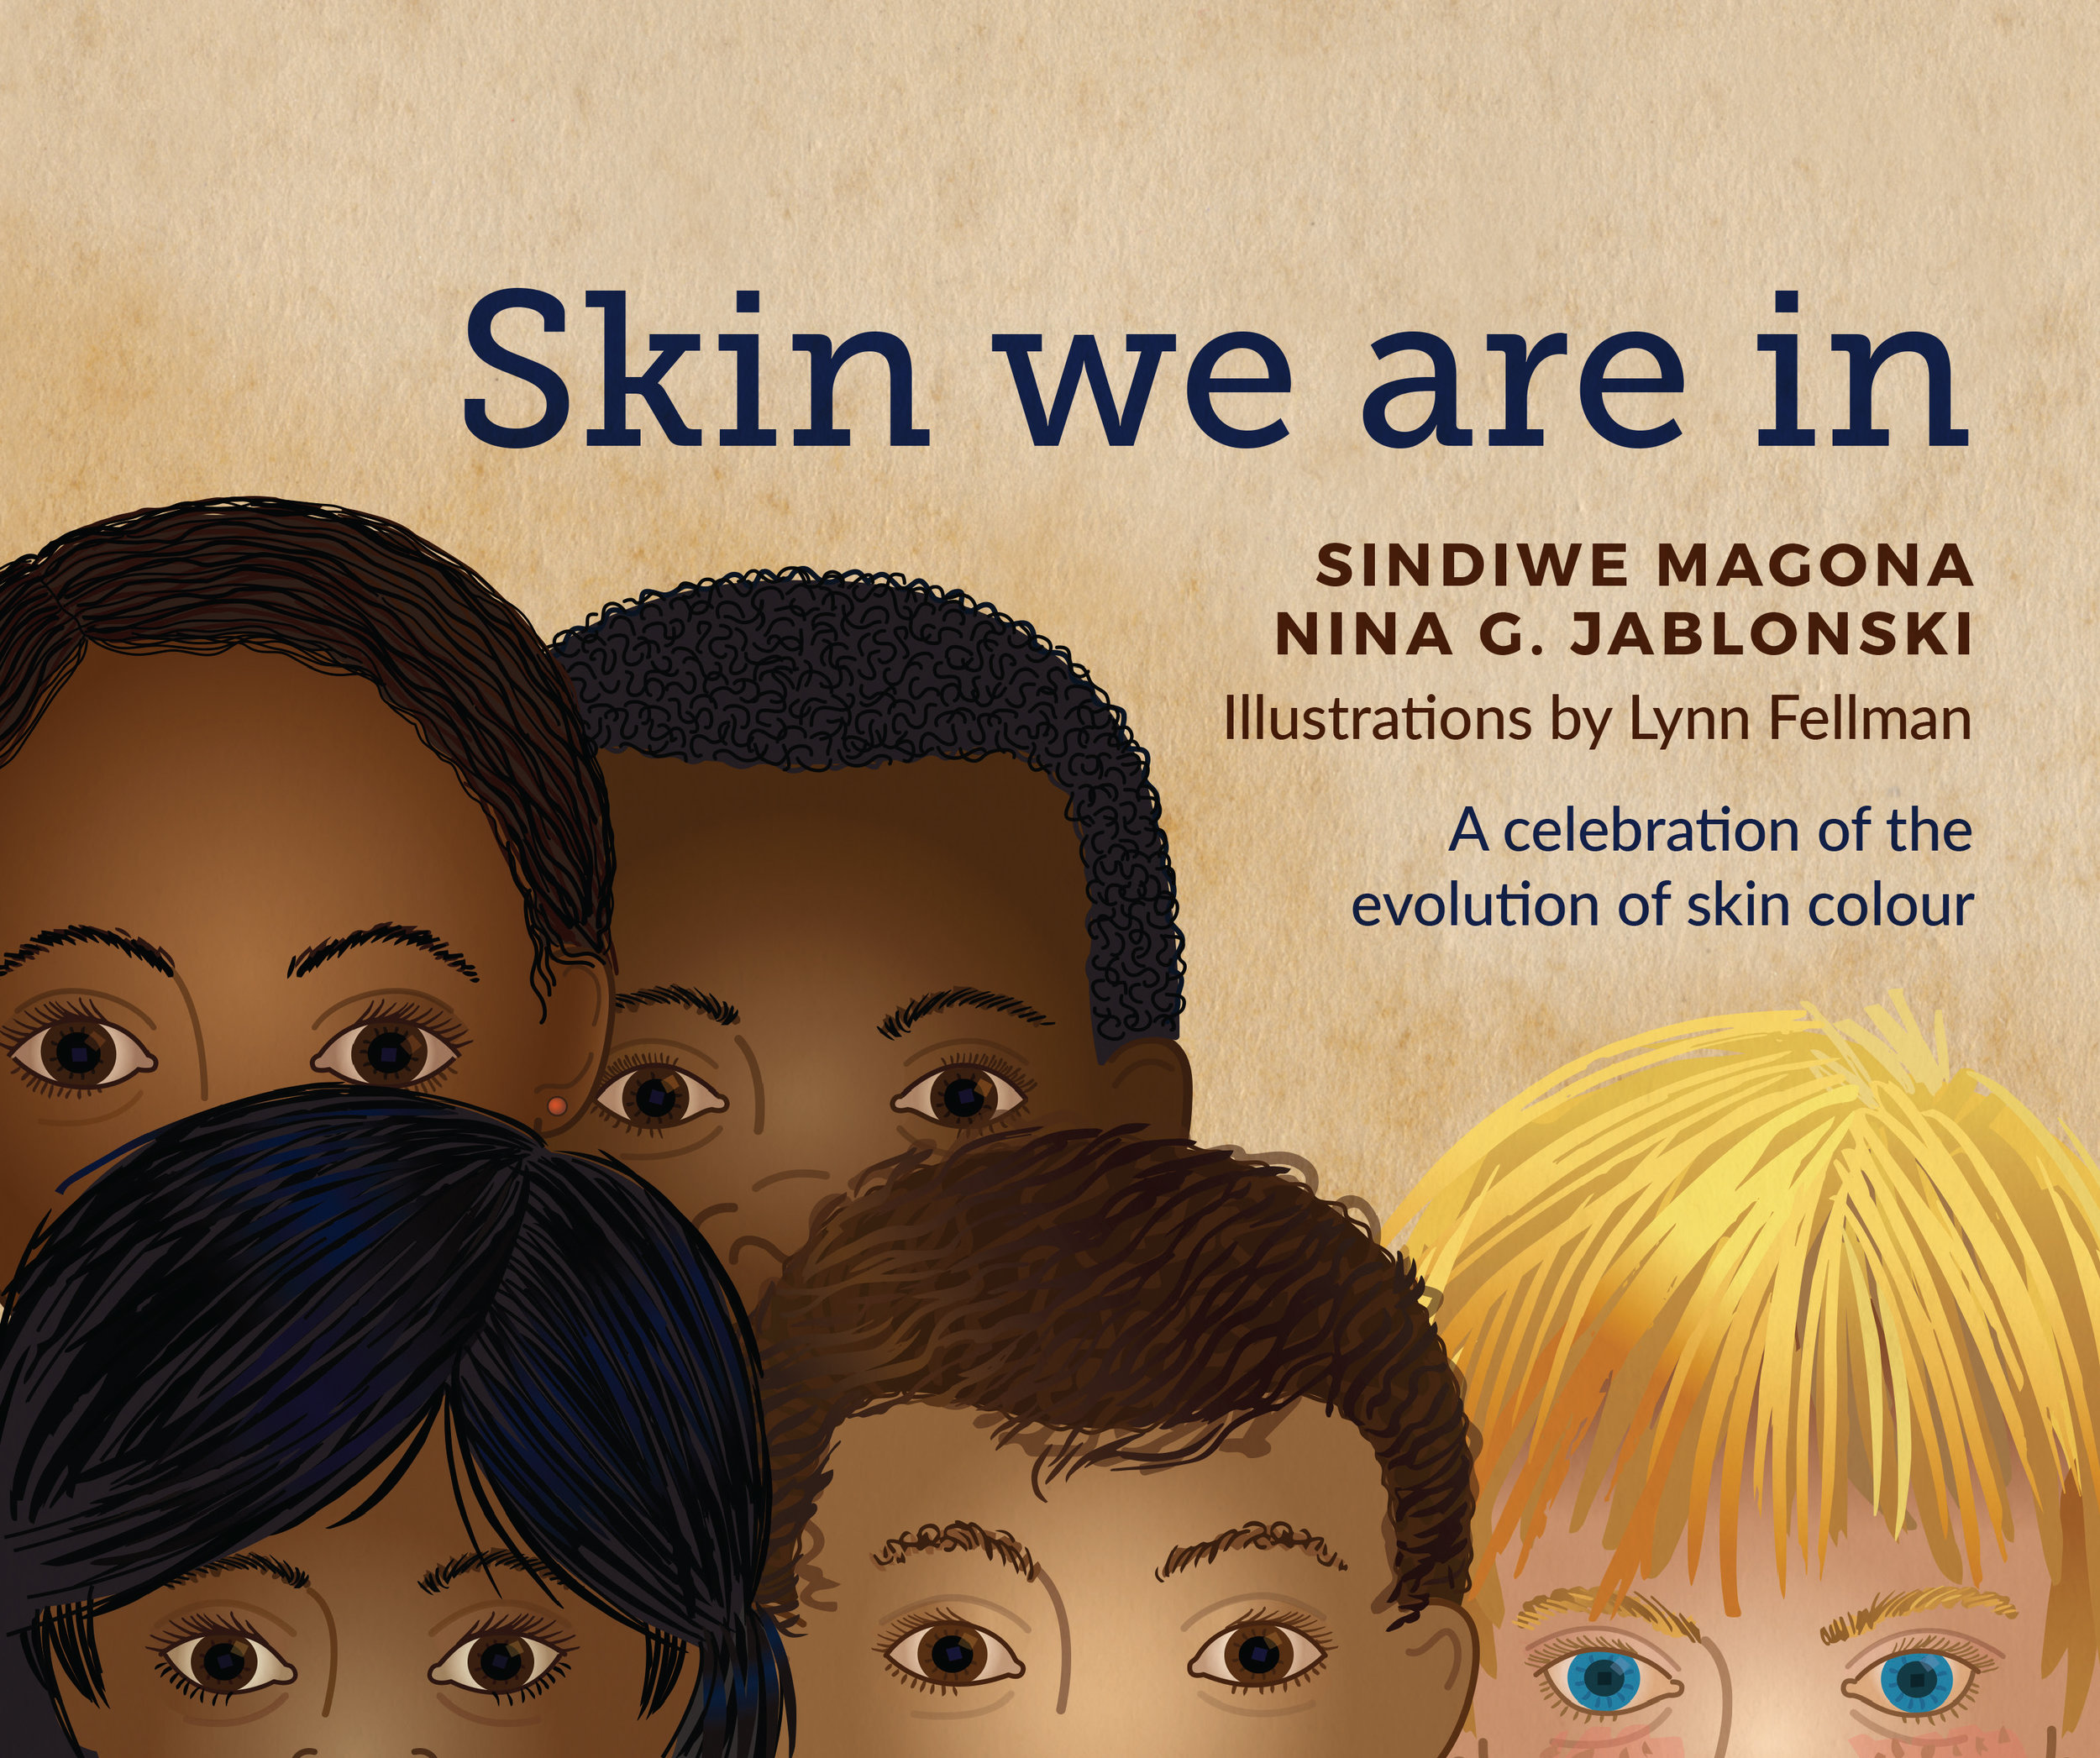 Skin we are in - Sindiwe Magona & Nina G Jablonski